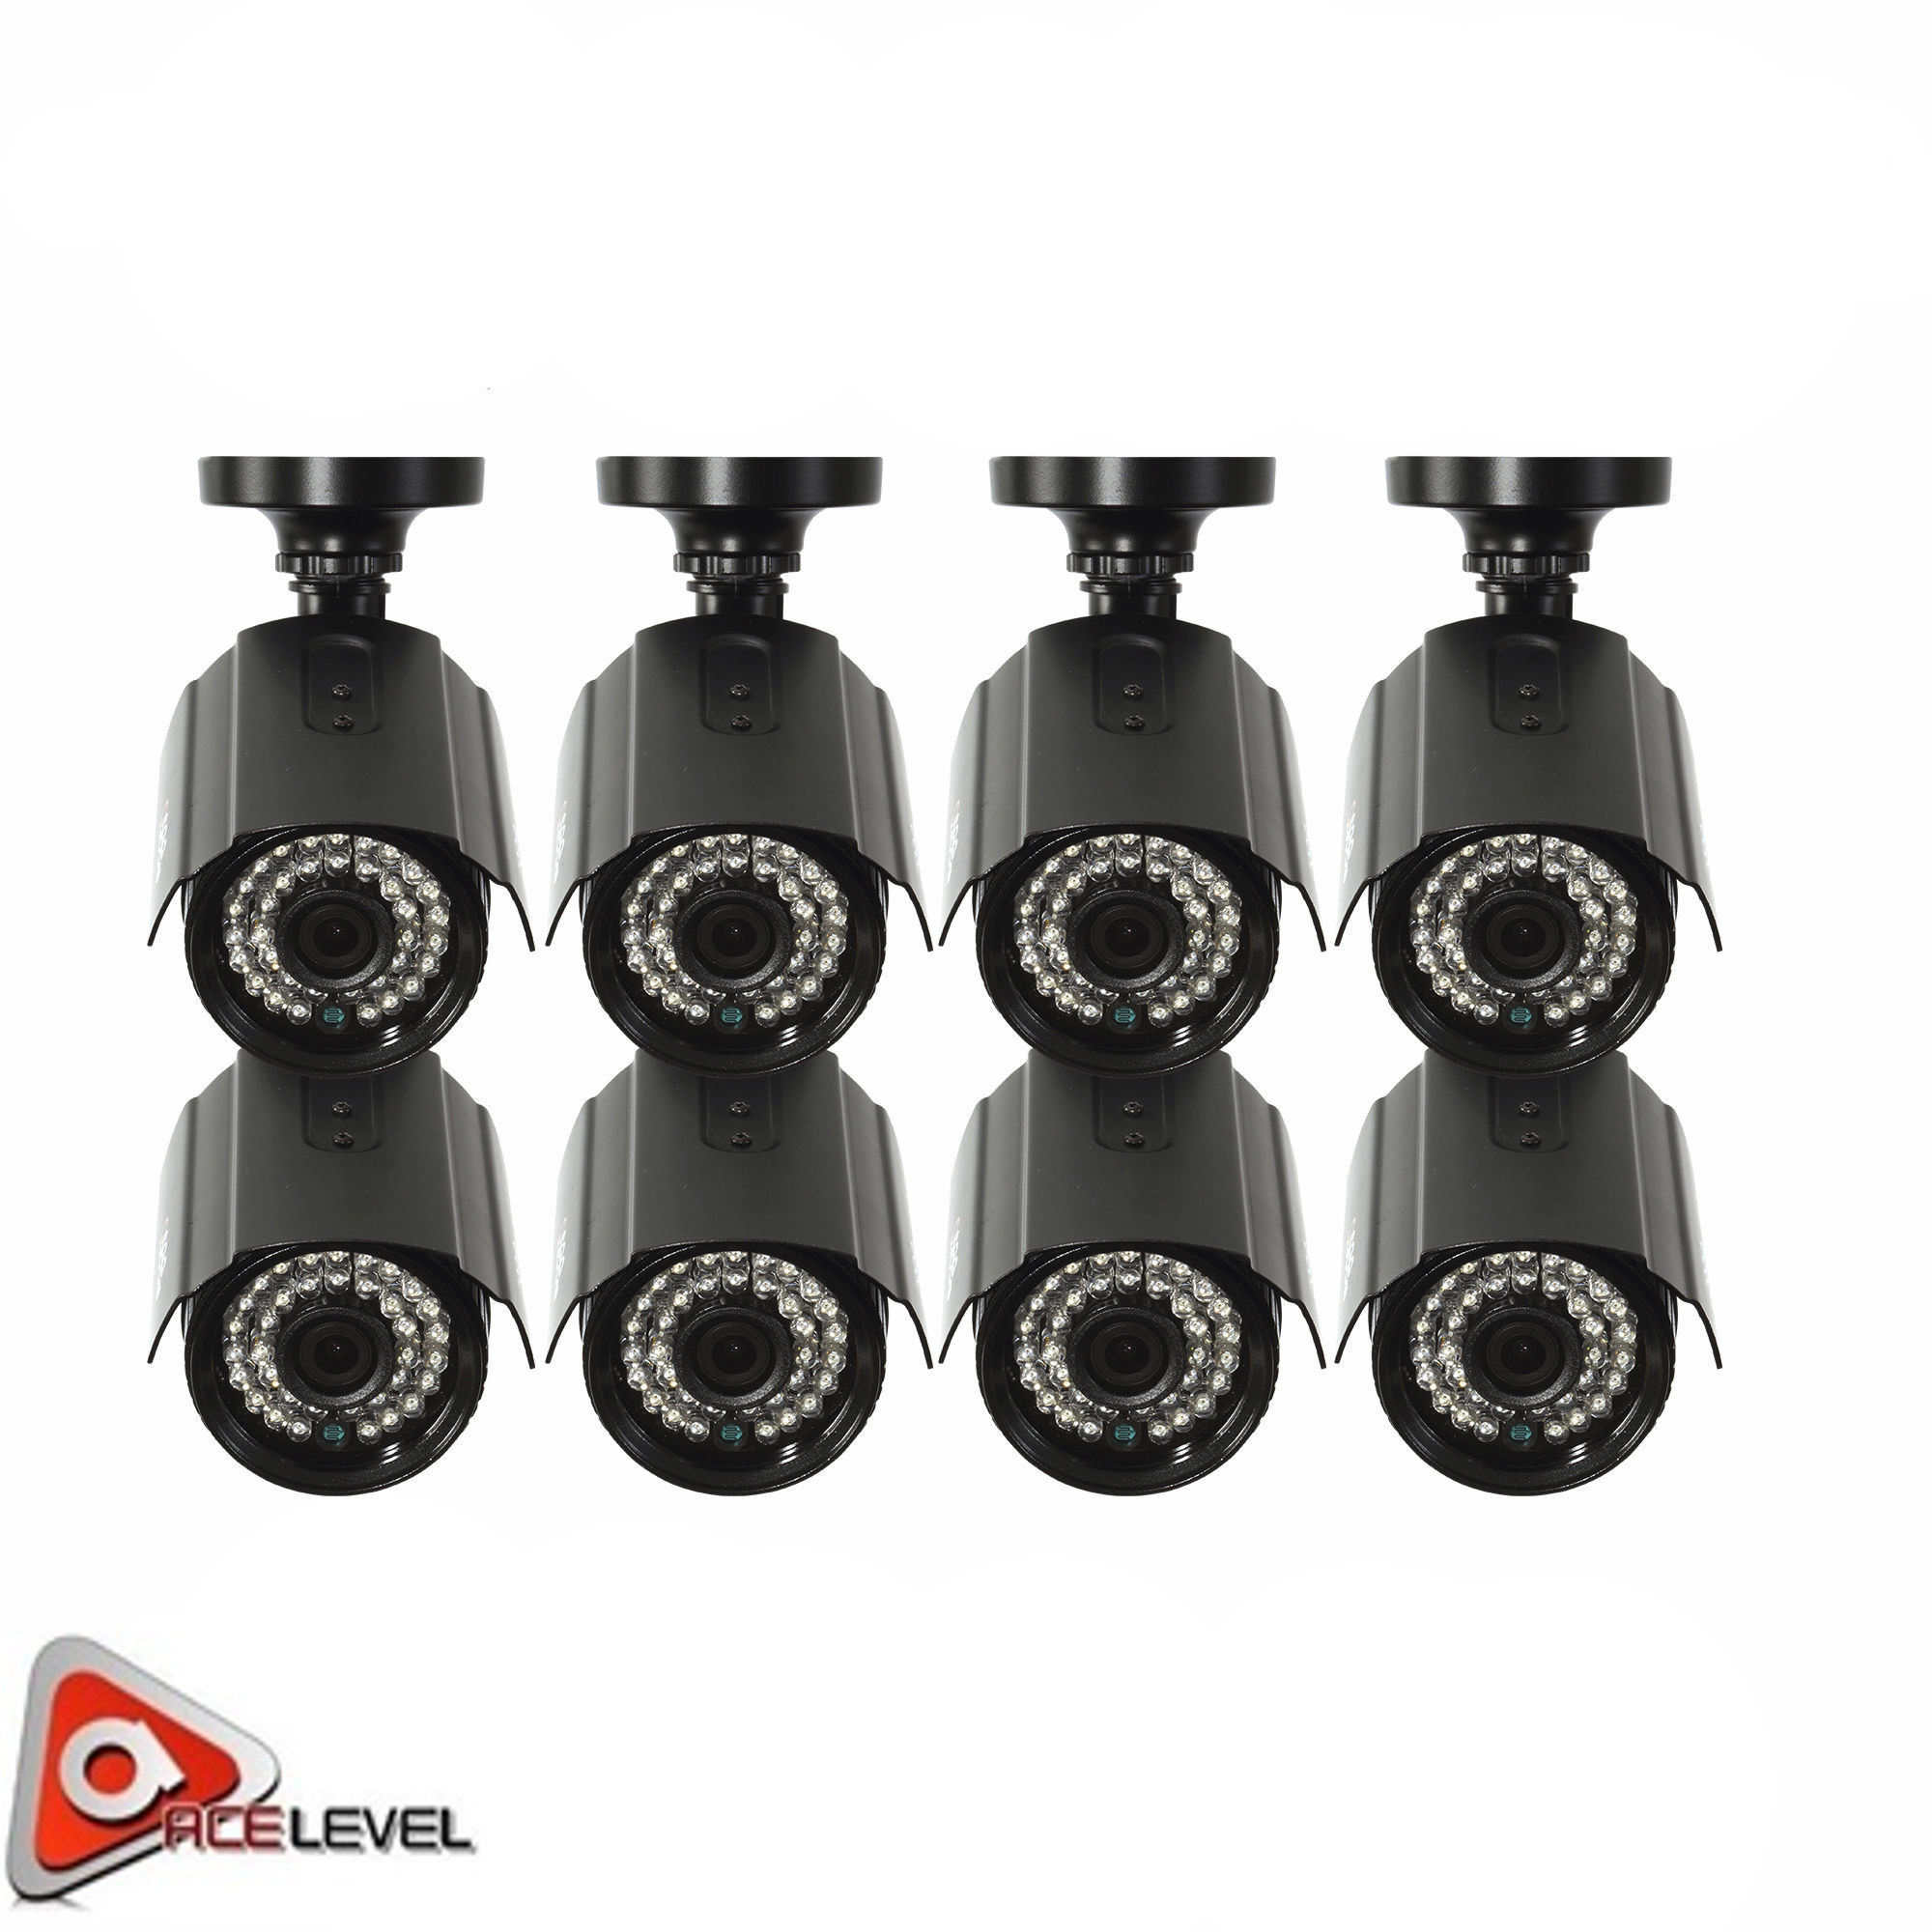 Q-See, 2MP, Bullet Camera, 8 pack